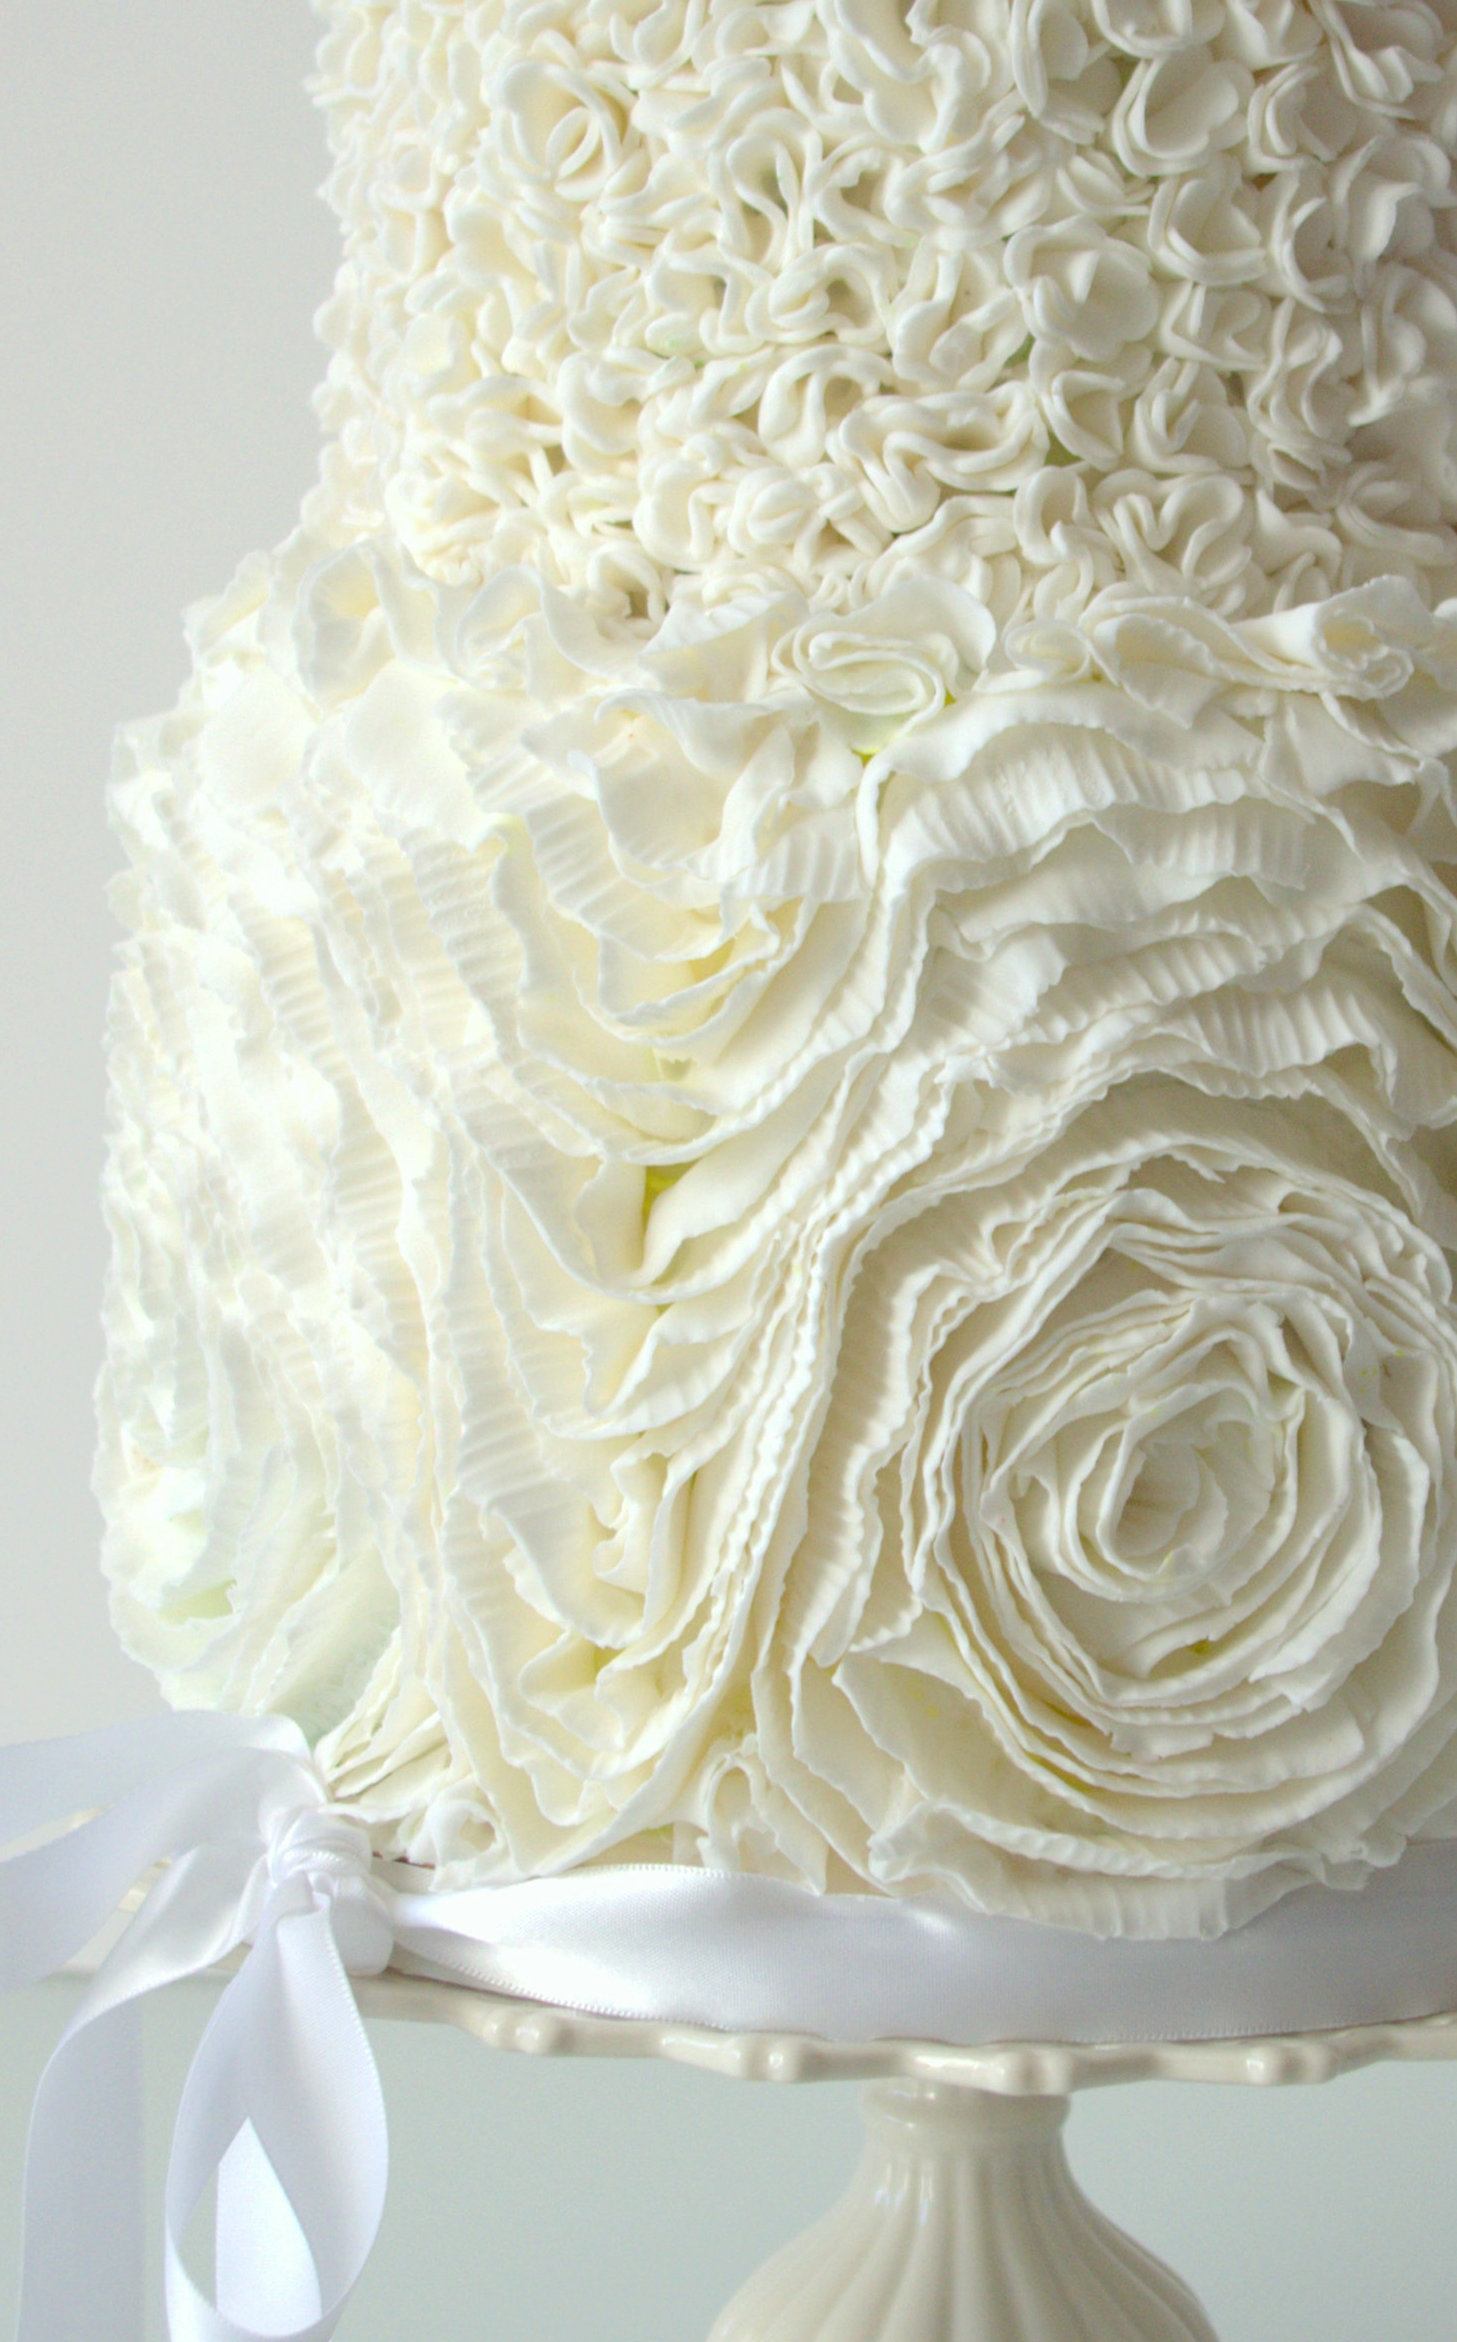 Ruffle Rose And Pompom Wedding Cake